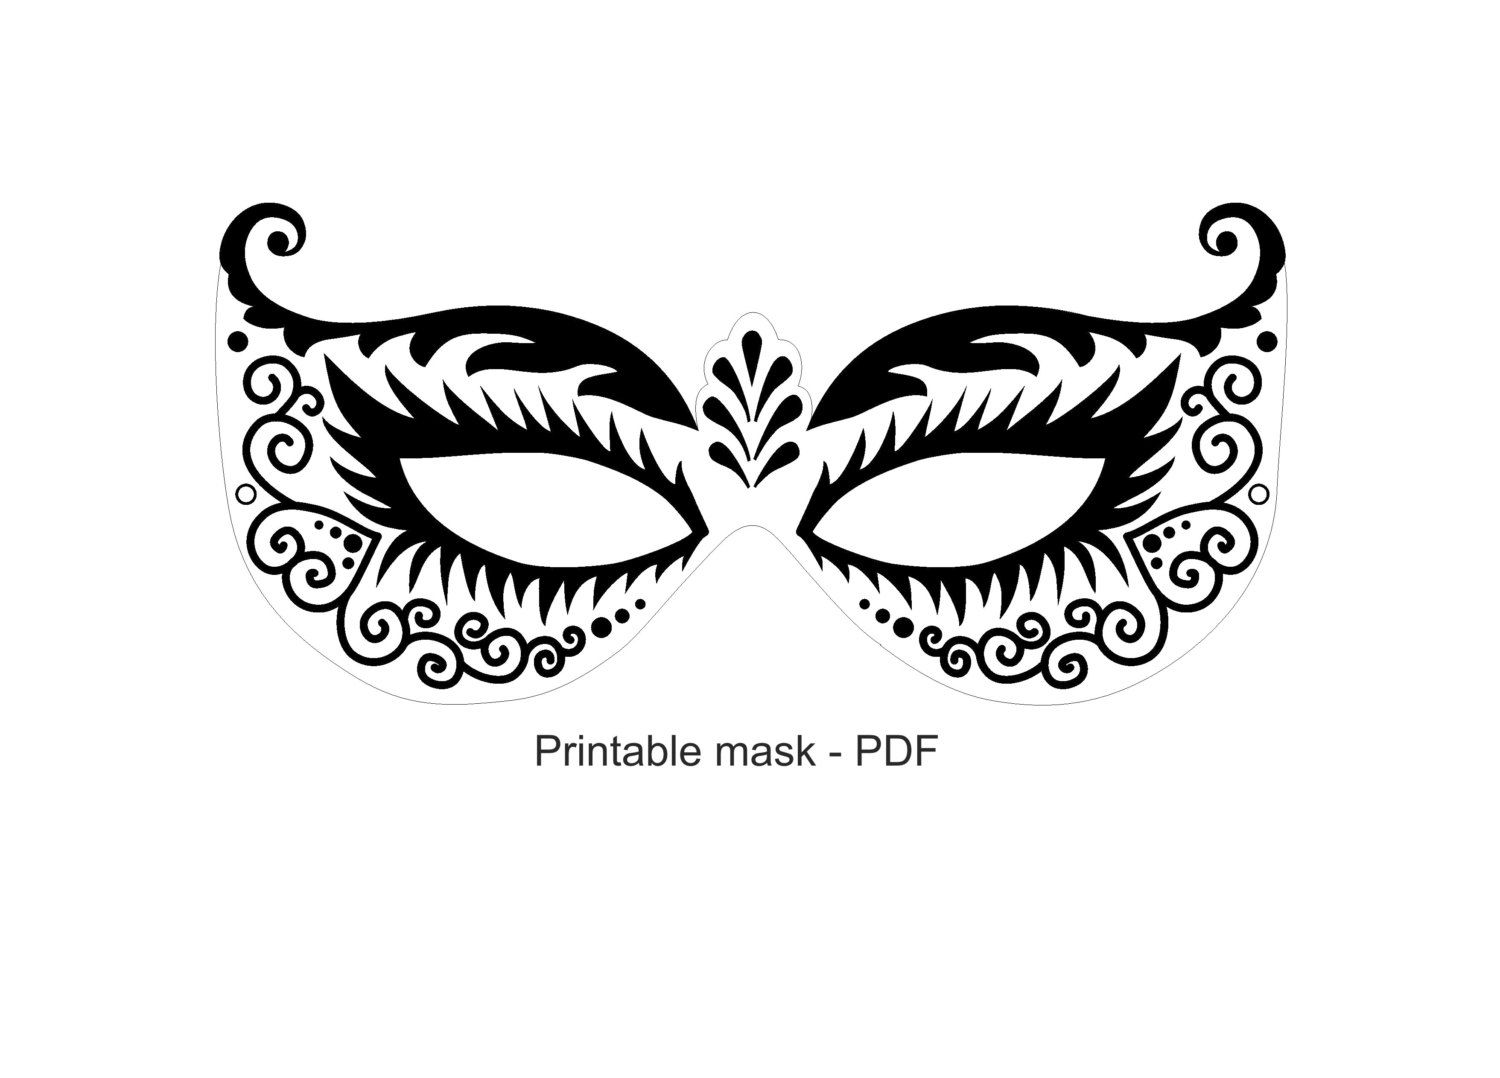 Nerdy image with regard to printable masquerade masks